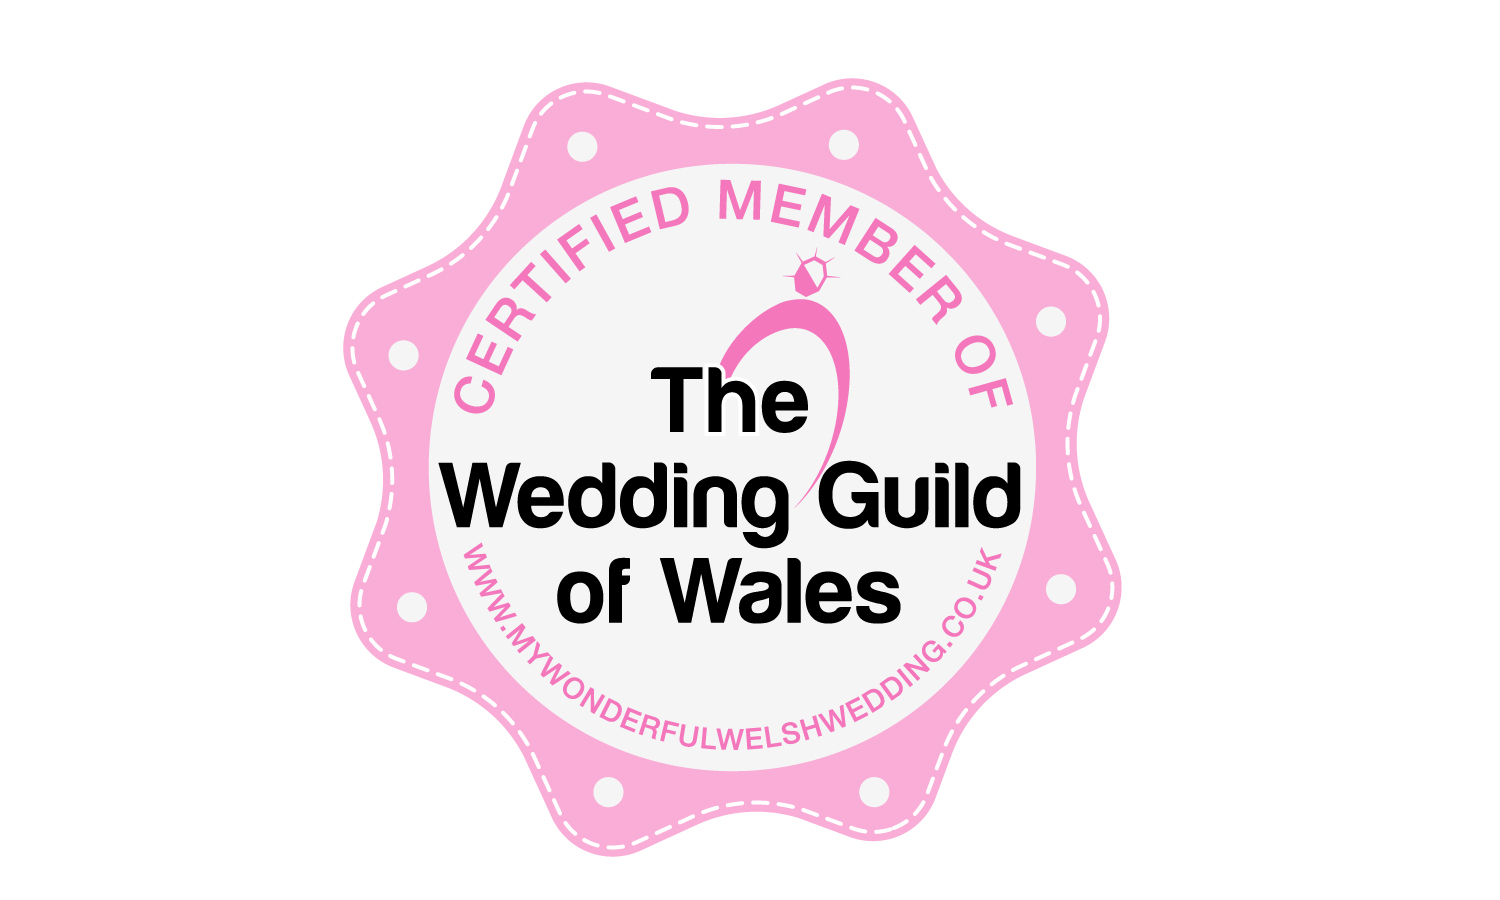 If you're looking for established wedding suppliers Guild of Welsh Wedding Suppliers is a great resource. We've worked with most of the suppliers and can highly recommend them -